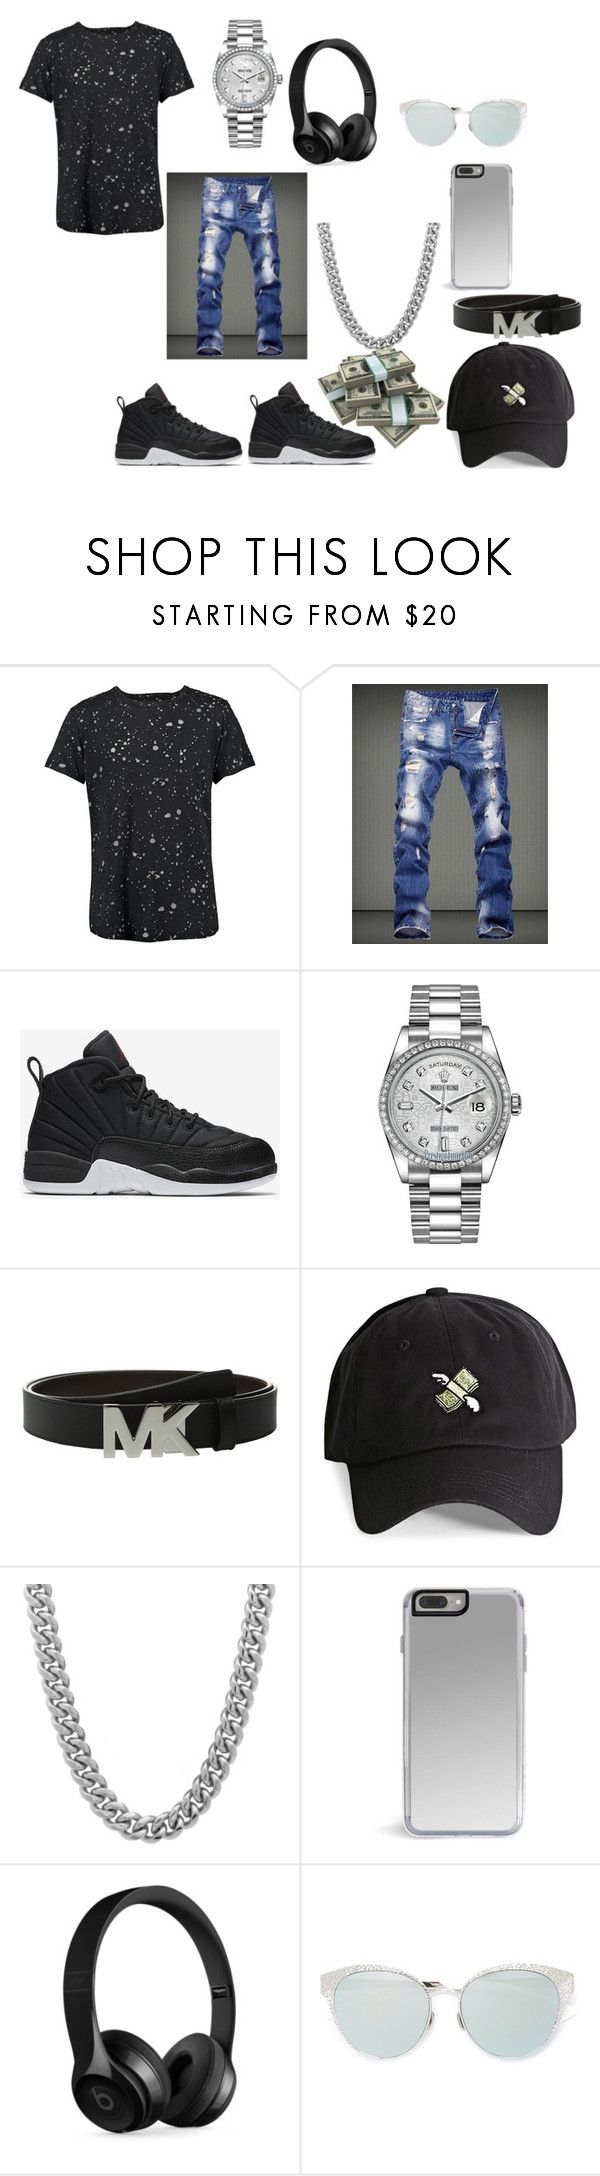 """Apple Jacks outfit"" by tamarabeautyx ❤ liked on Polyvore featuring Boohoo, NIKE, Rolex, Michael Kors, 21 Men, Sterling Essentials, Beats by Dr. Dre, men's fashion and menswear"